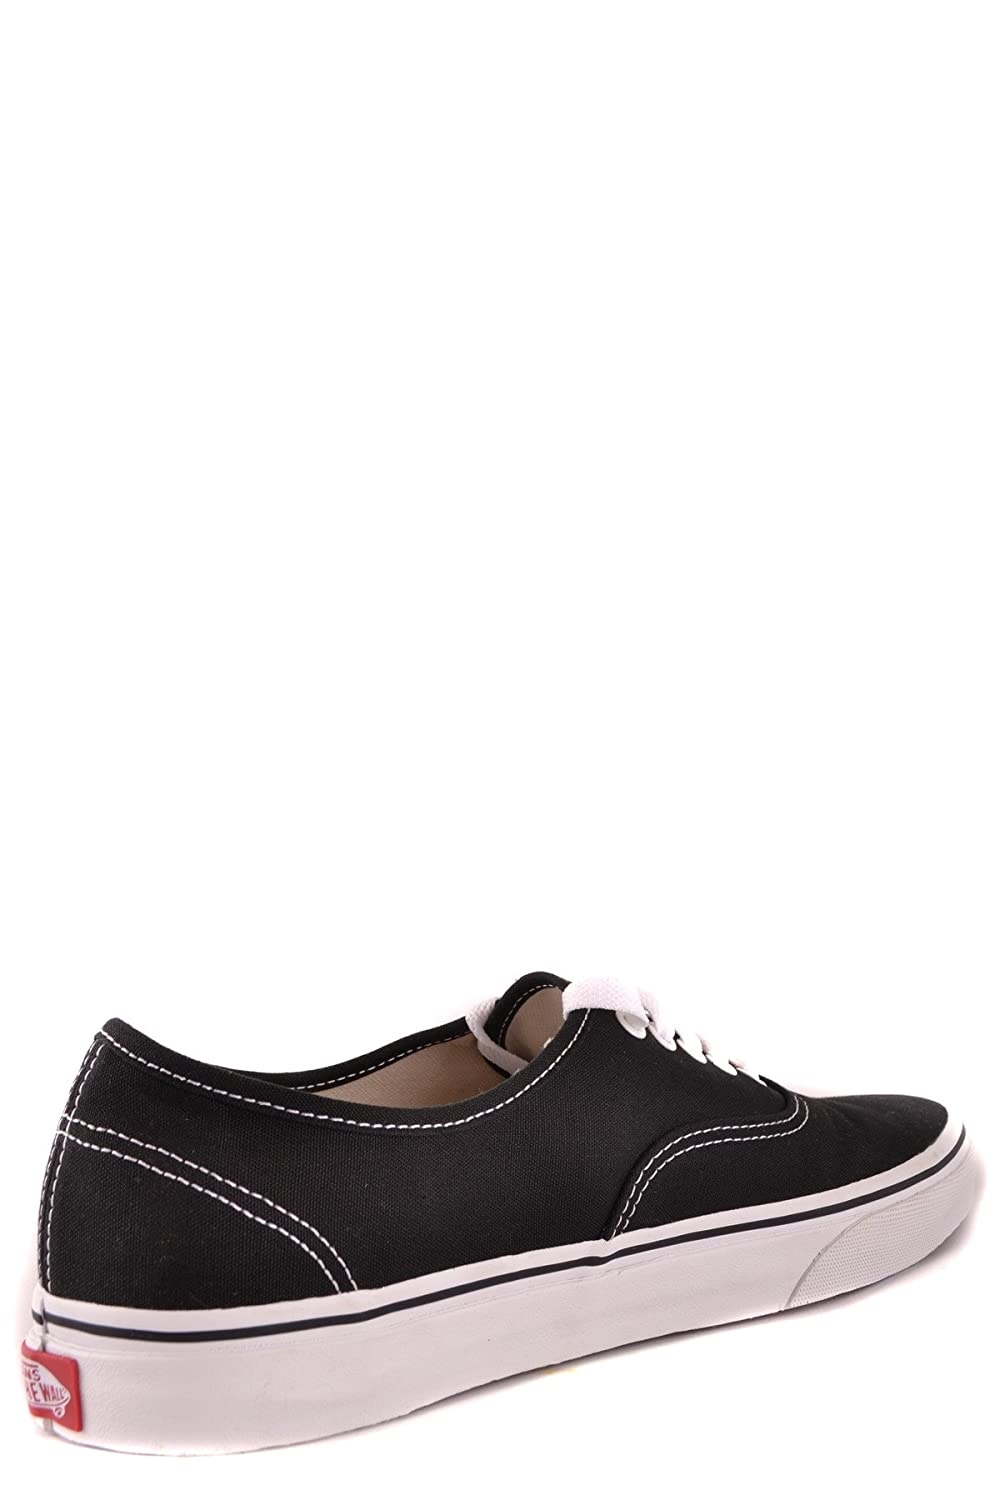 VANS HOMME MCBI3061015O NOIR TISSU BASKETS QHQoDA7c